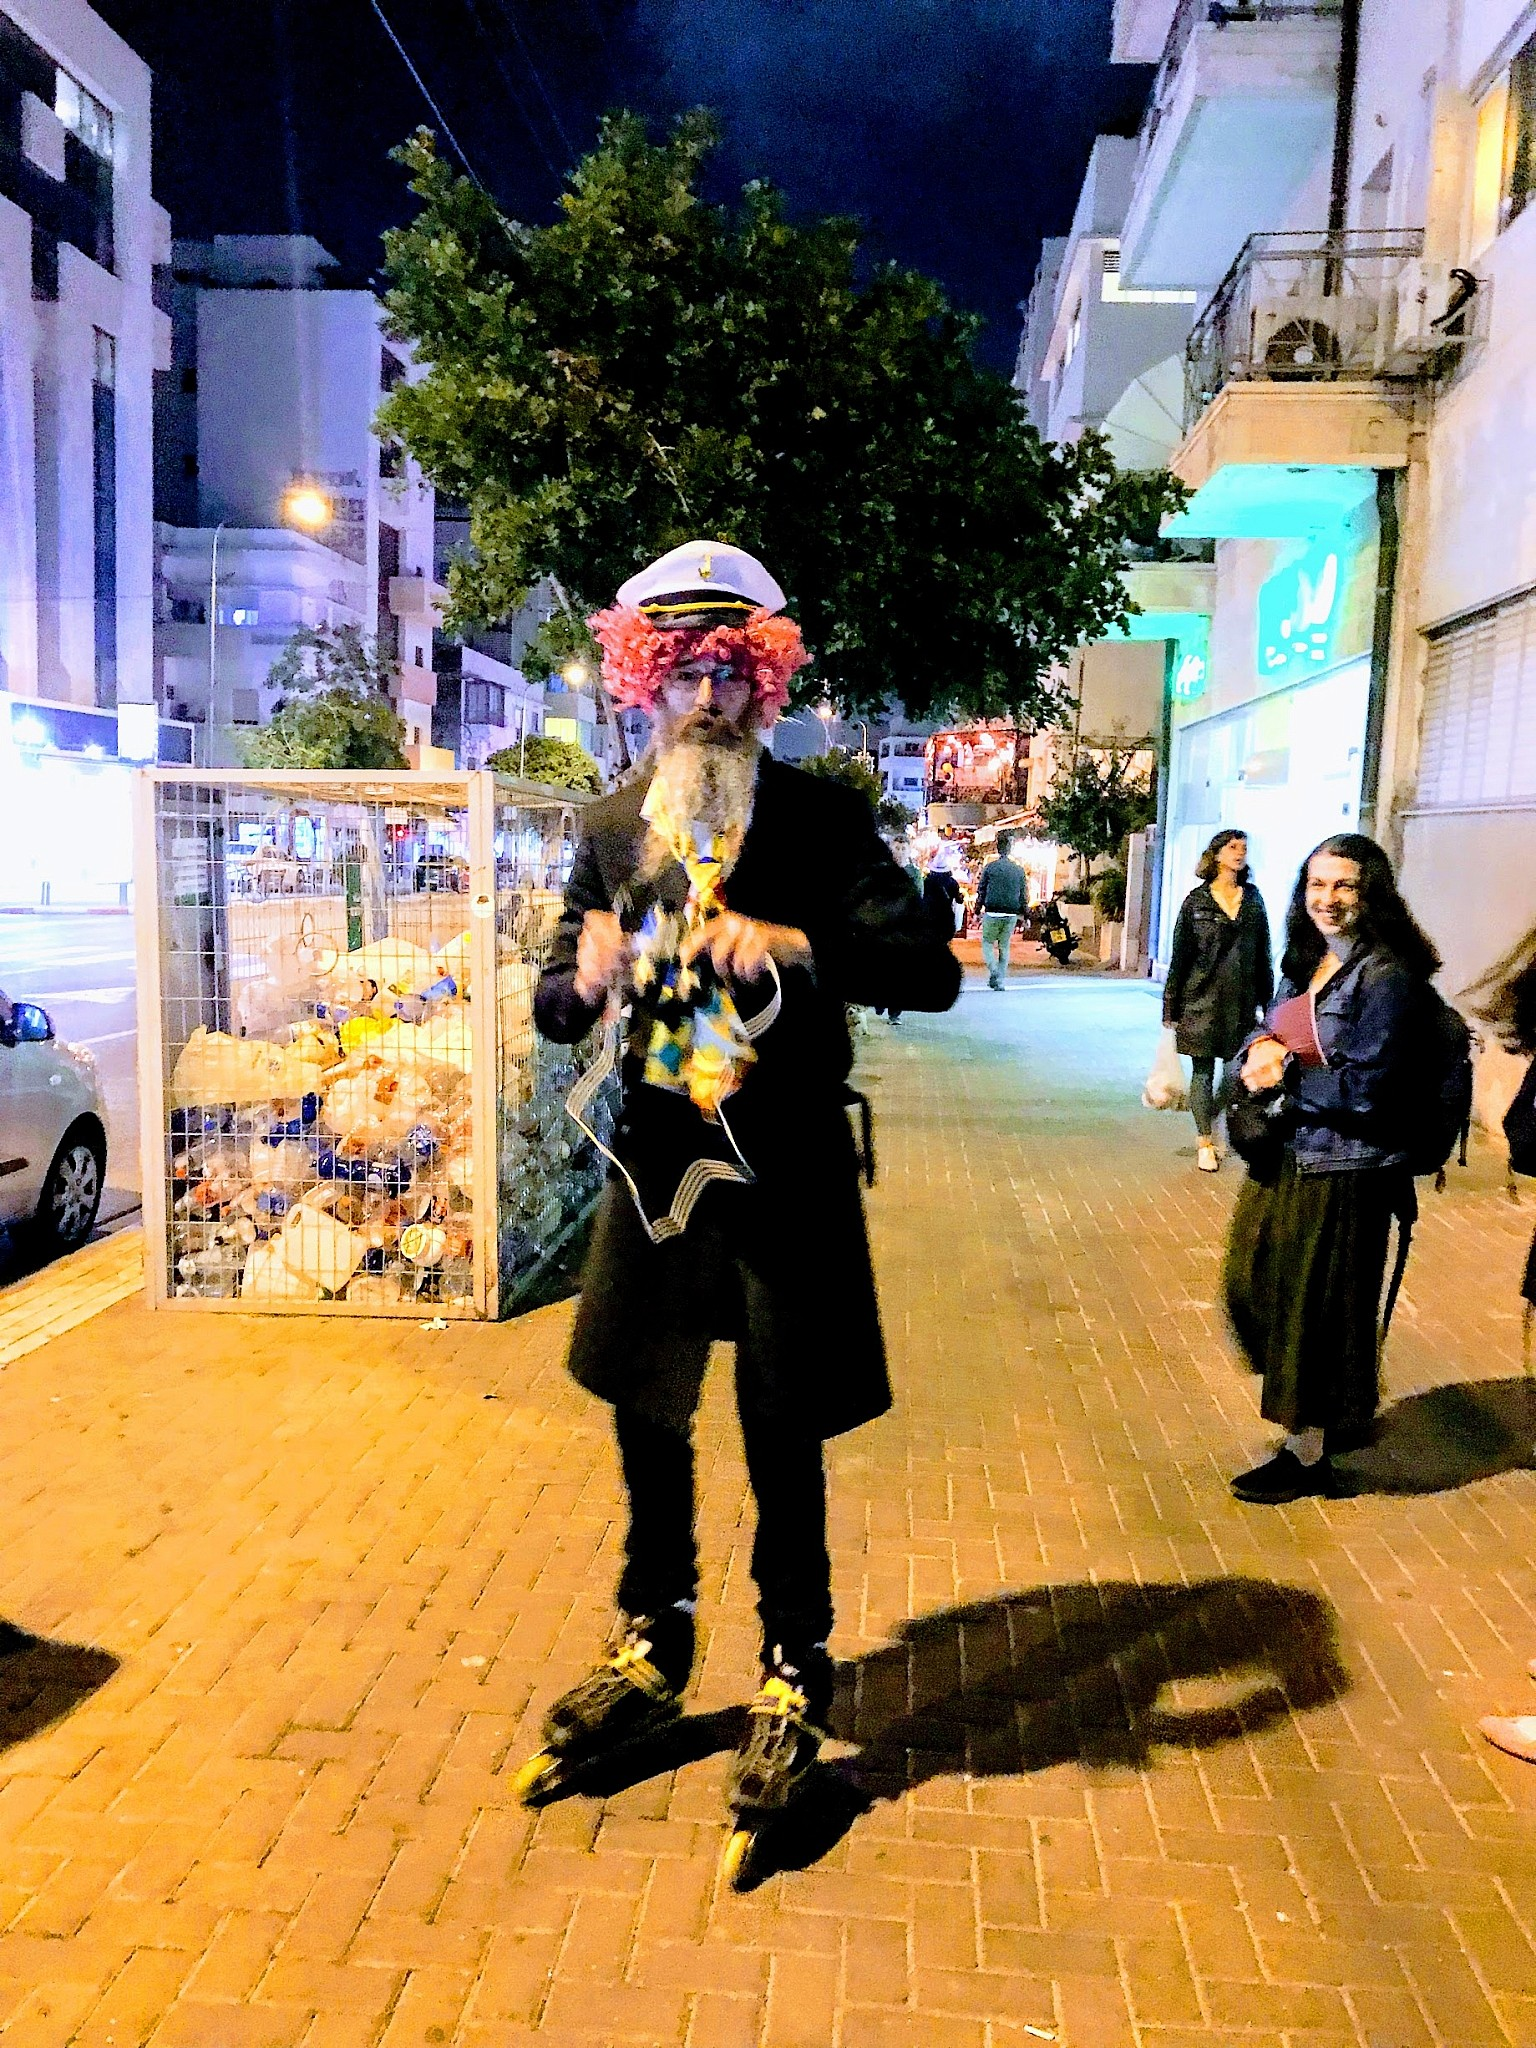 Purim in Israel, Chabad Style